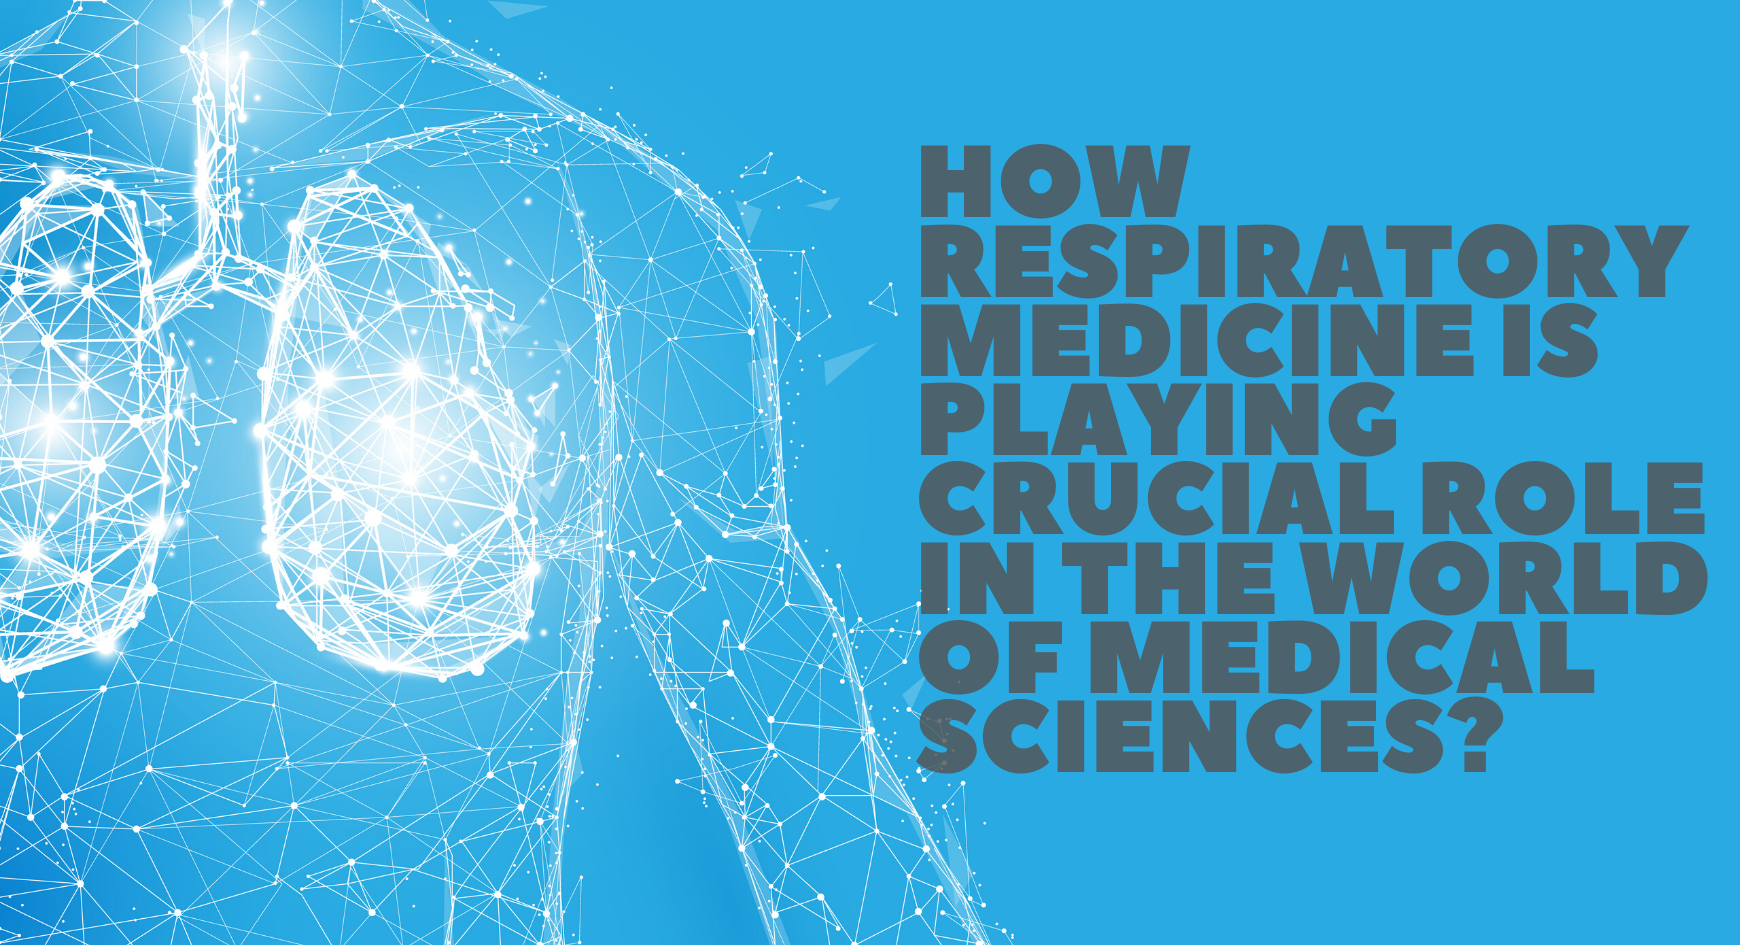 How Respiratory Medicine is playing crucial role in the world of Medical Sciences?